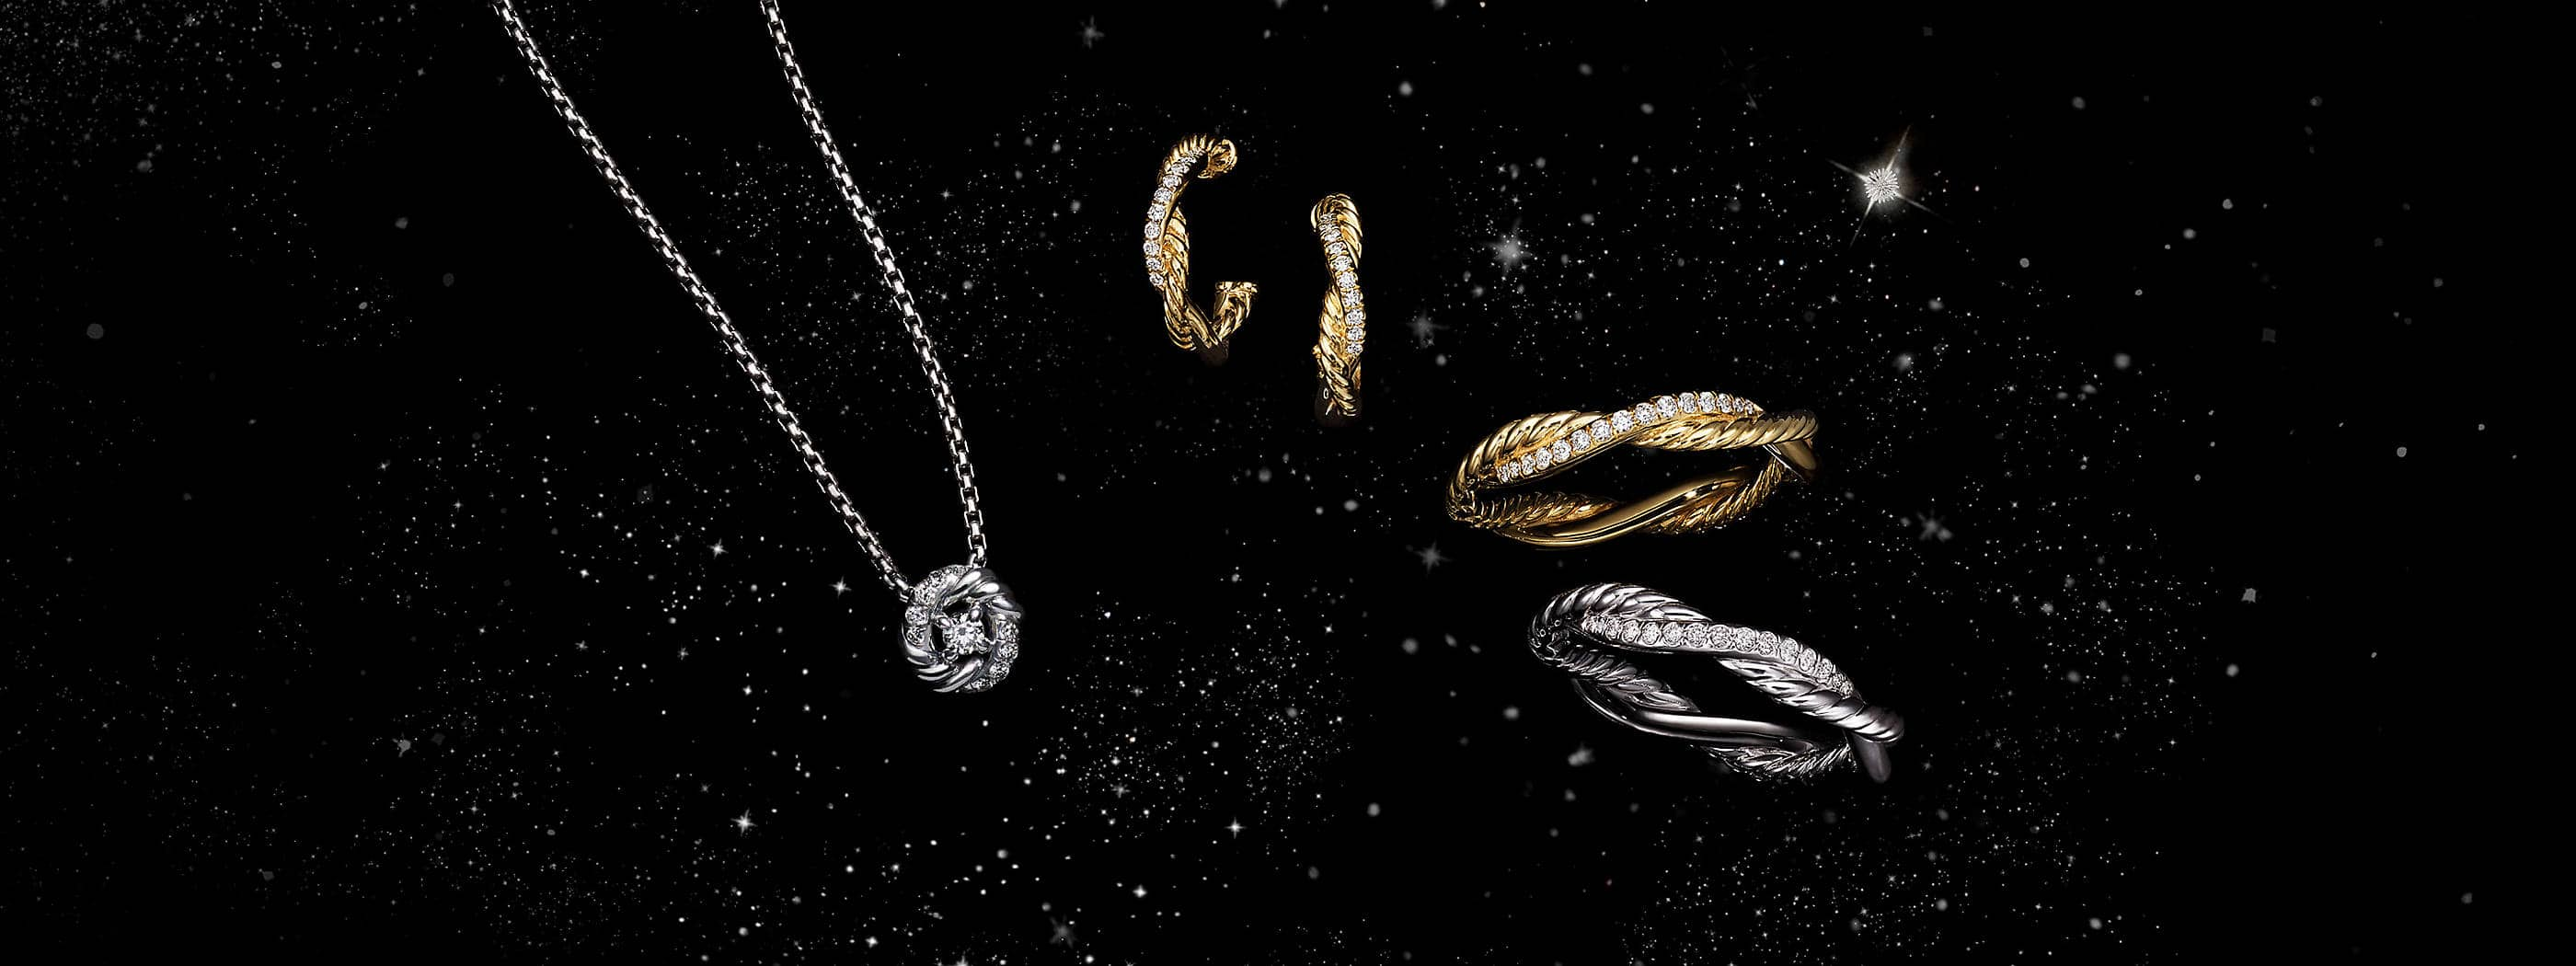 A color photo shows a pendant necklace floating next to a pair of hoop earrings and two band rings from David Yurman women's Infinity Collection in front of a starry night sky. The jewelry is crafted from strands of sterling silver or 18K yellow gold Cable entwined with pavé diamonds.